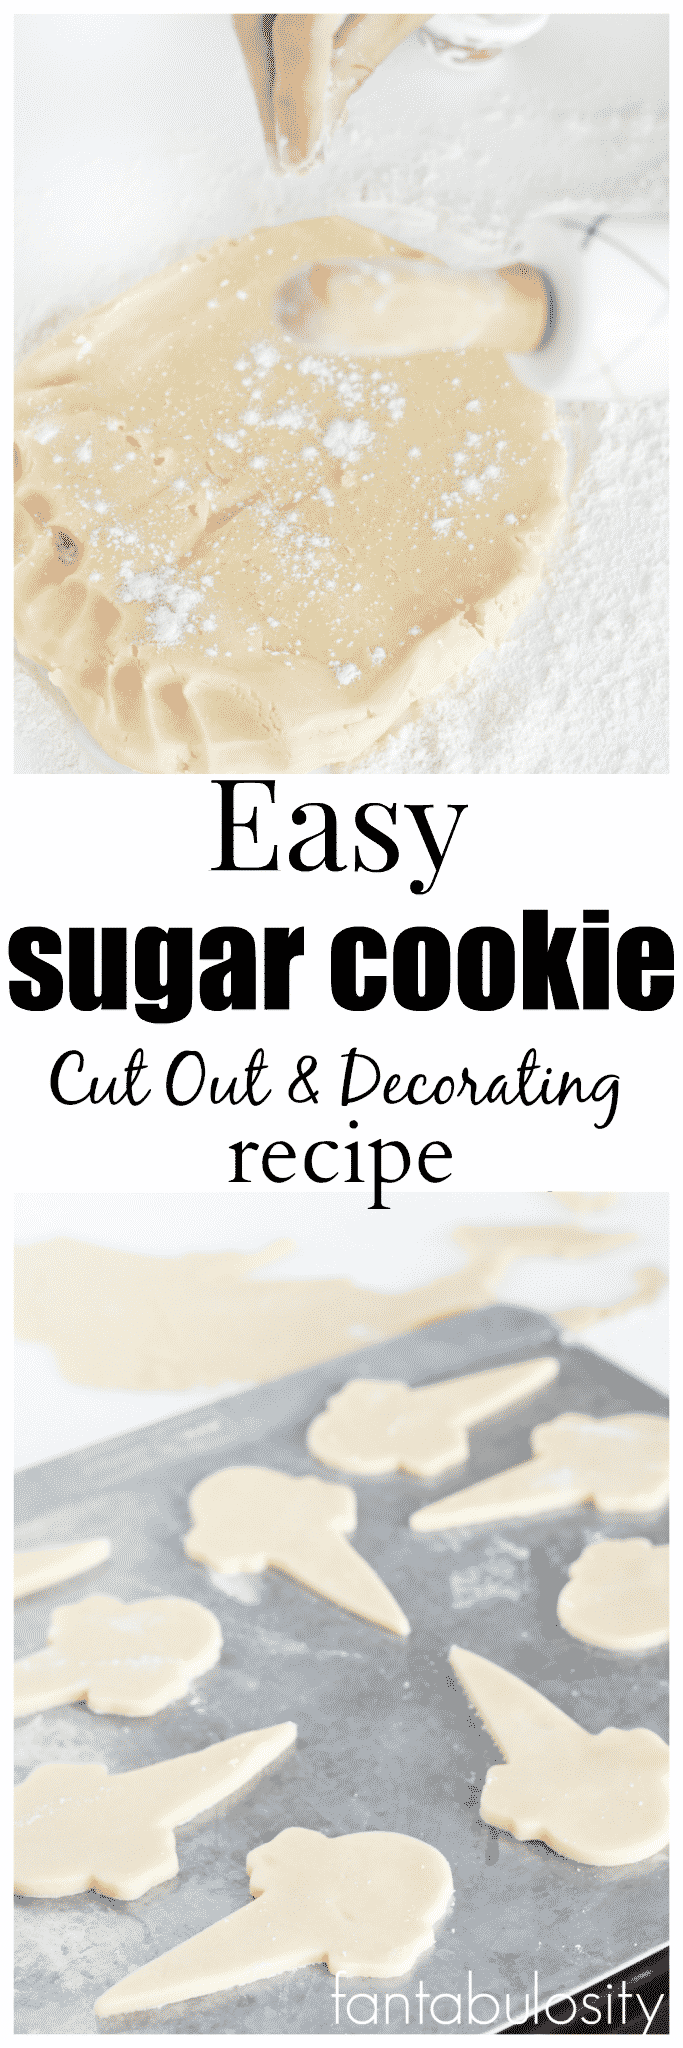 Easy Sugar Cookie Recipe. Great for cut out cookies and decorating!!! Love this one, and requires no refrigeration!